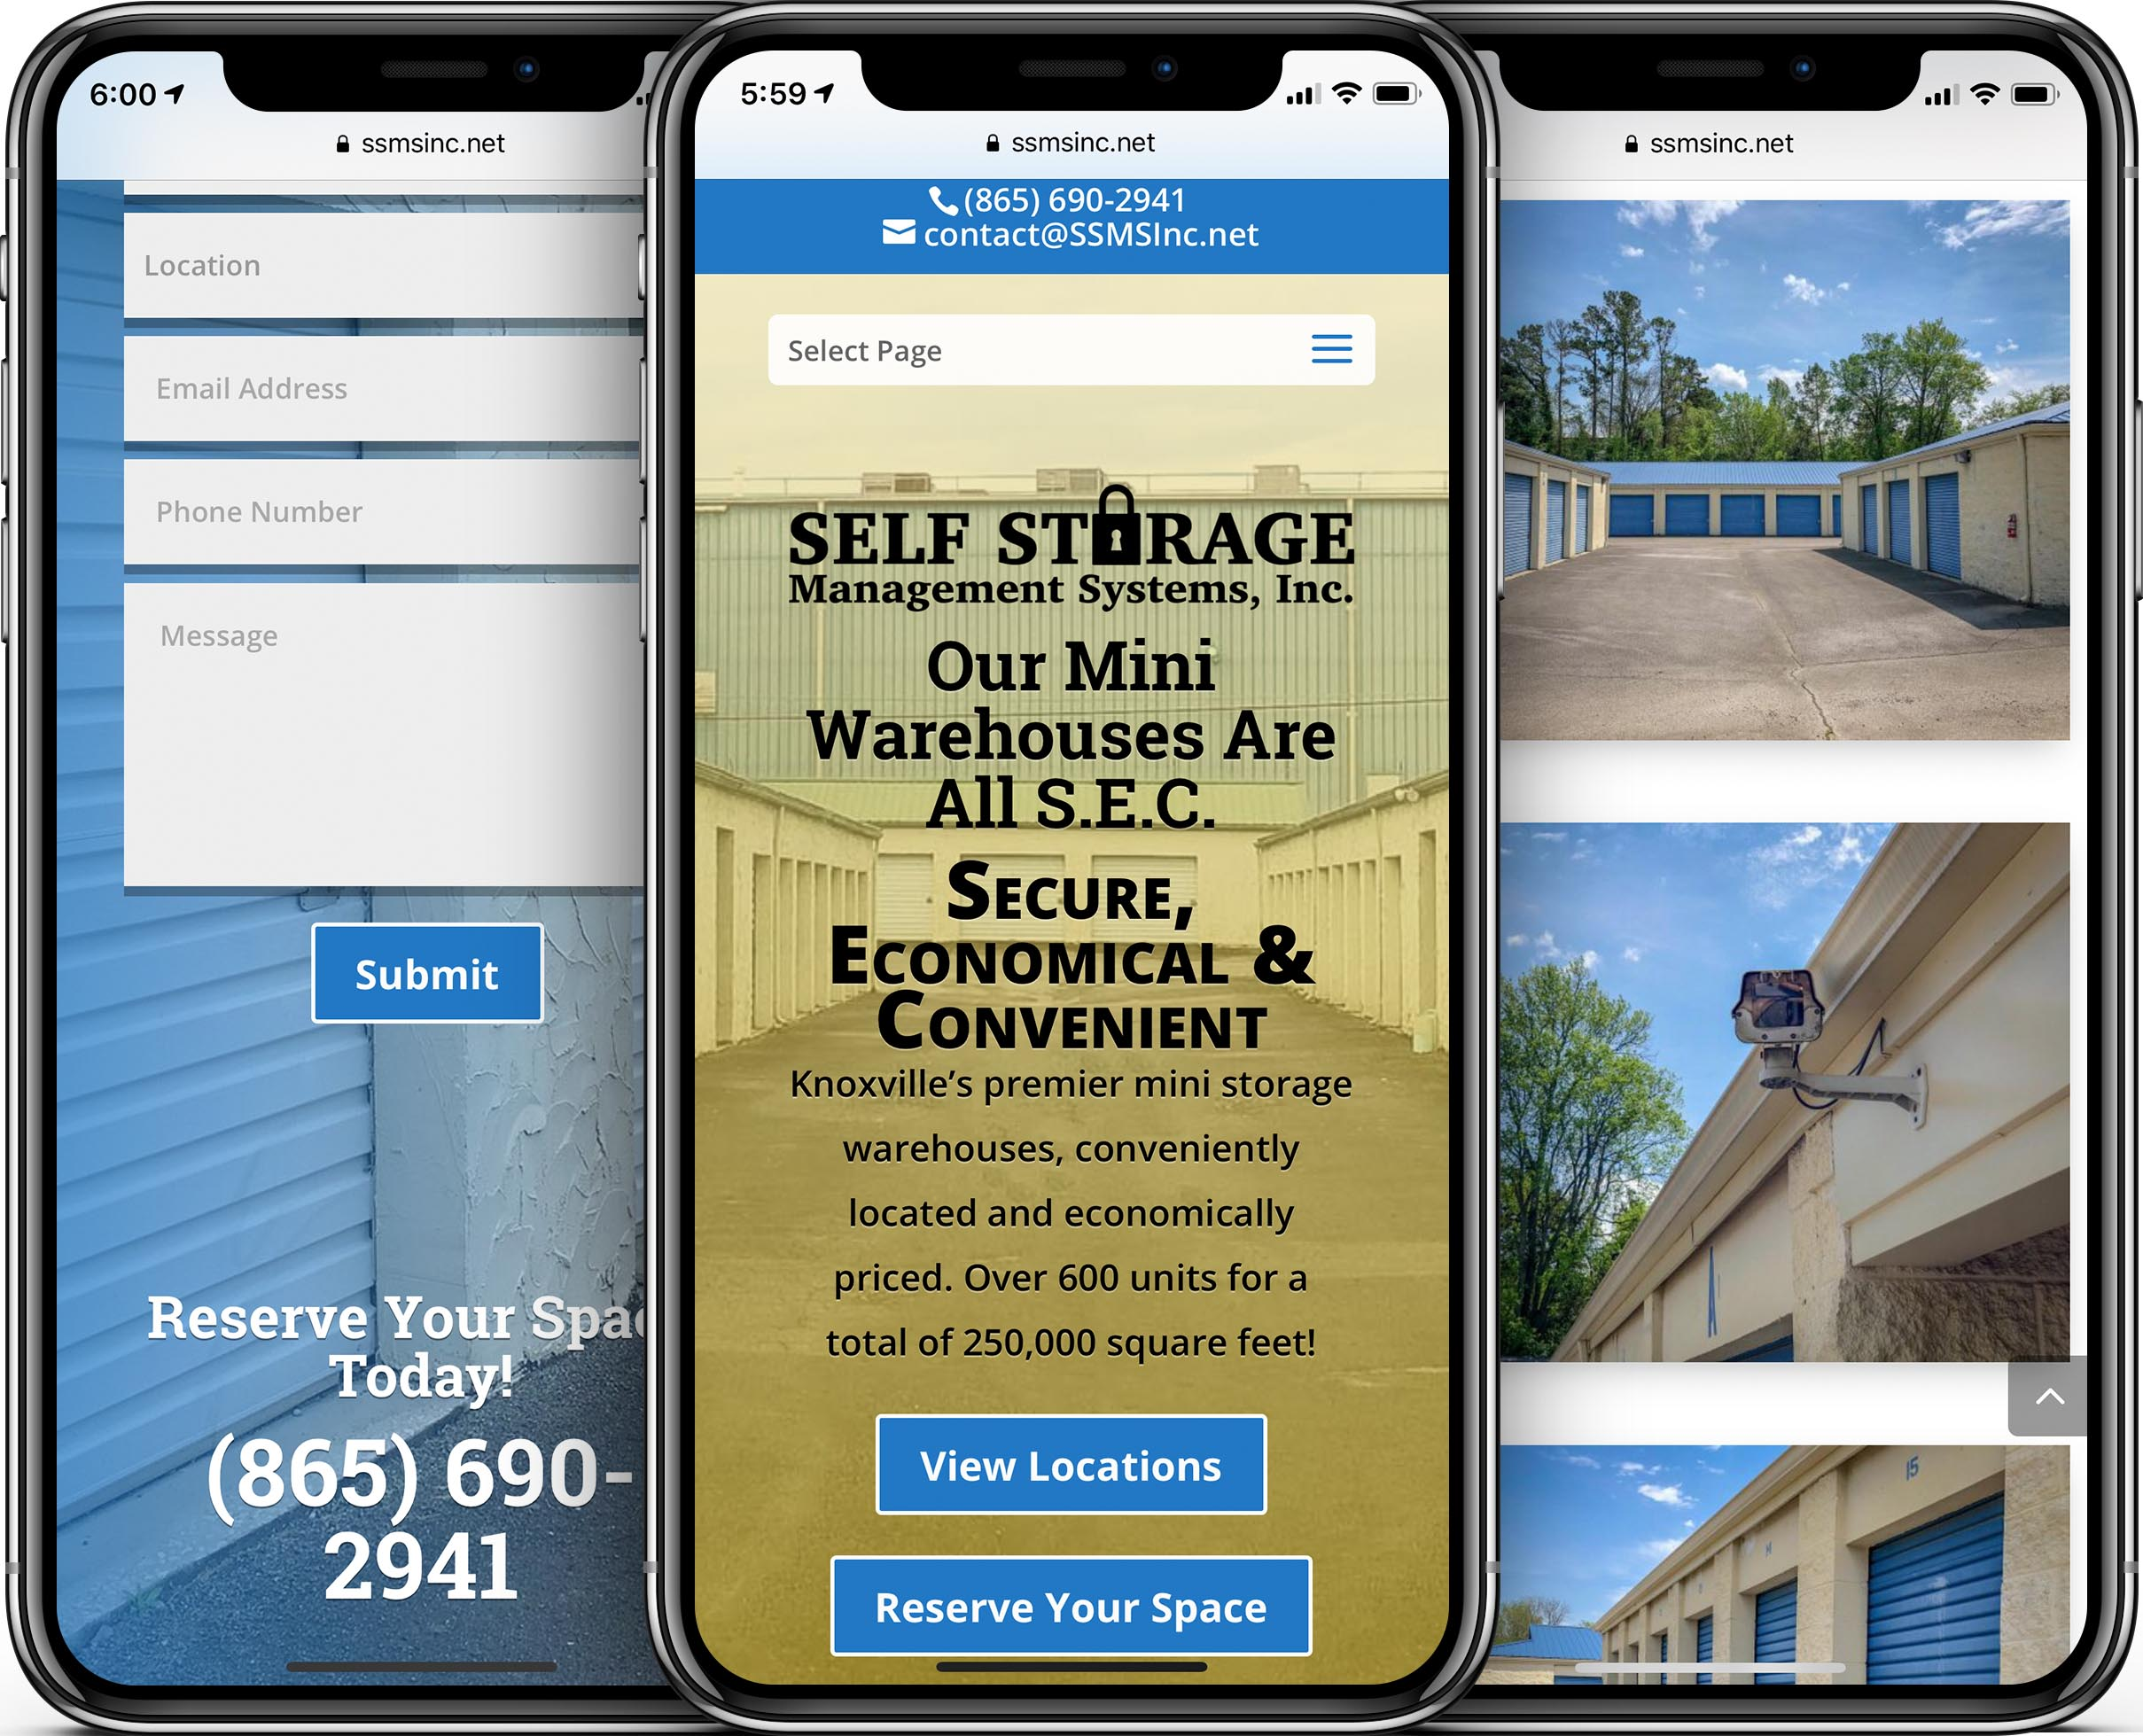 Self Storage Management Systems Mobile-Friendly Web Design